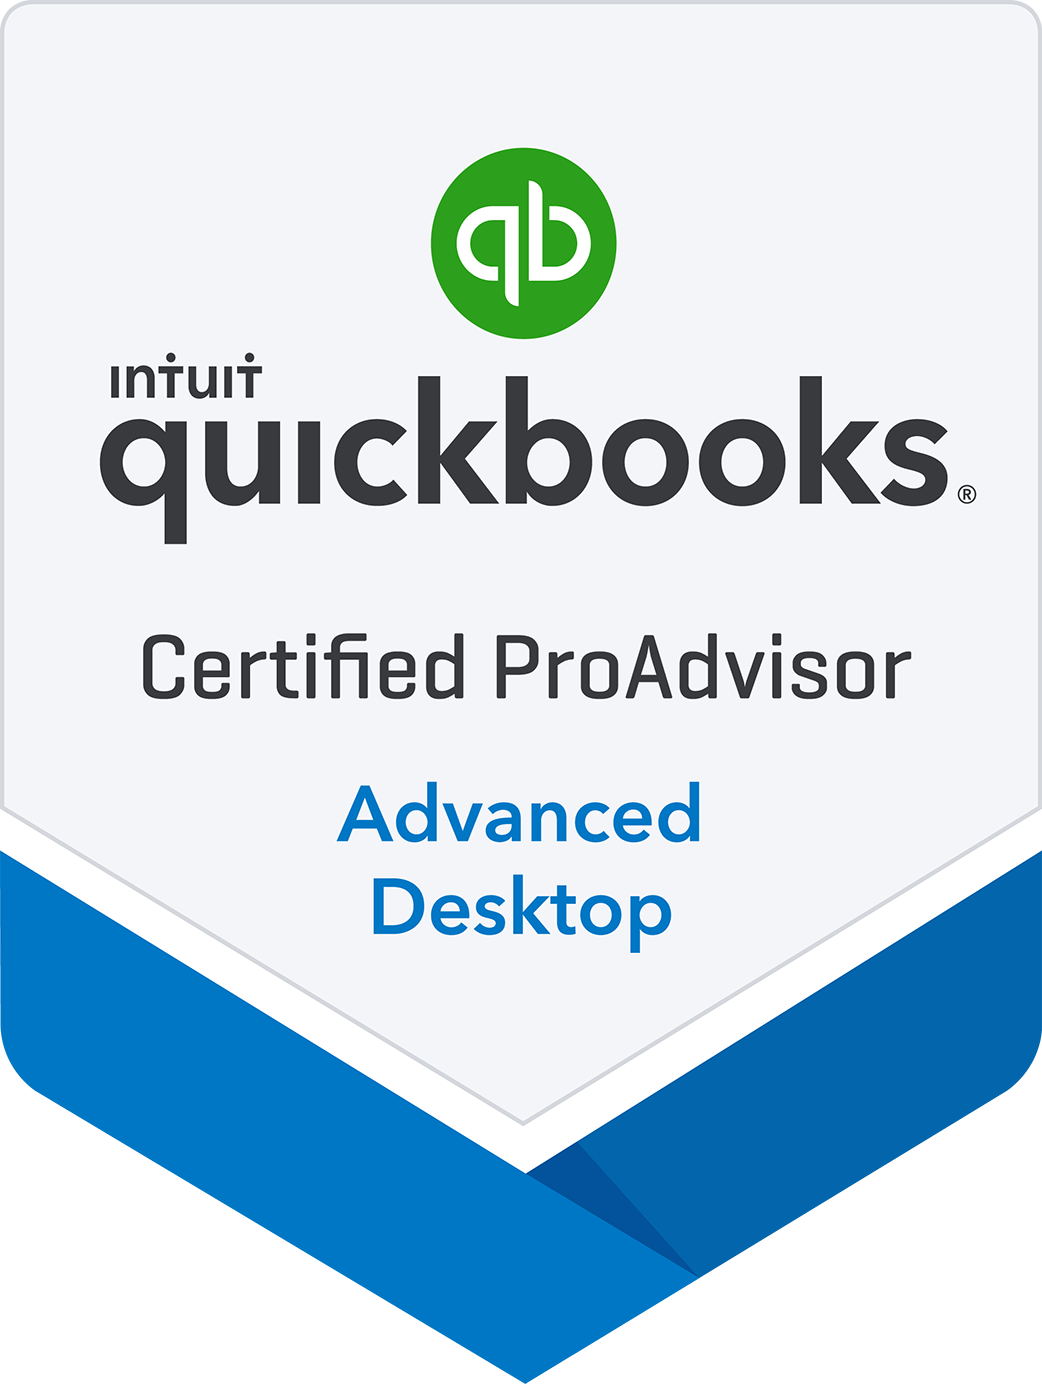 Certified Advanced QuickBooks Desktop Proadvisor in New York, Long Island, Nassau & Suffolk Counties, Queens, and Brooklyn